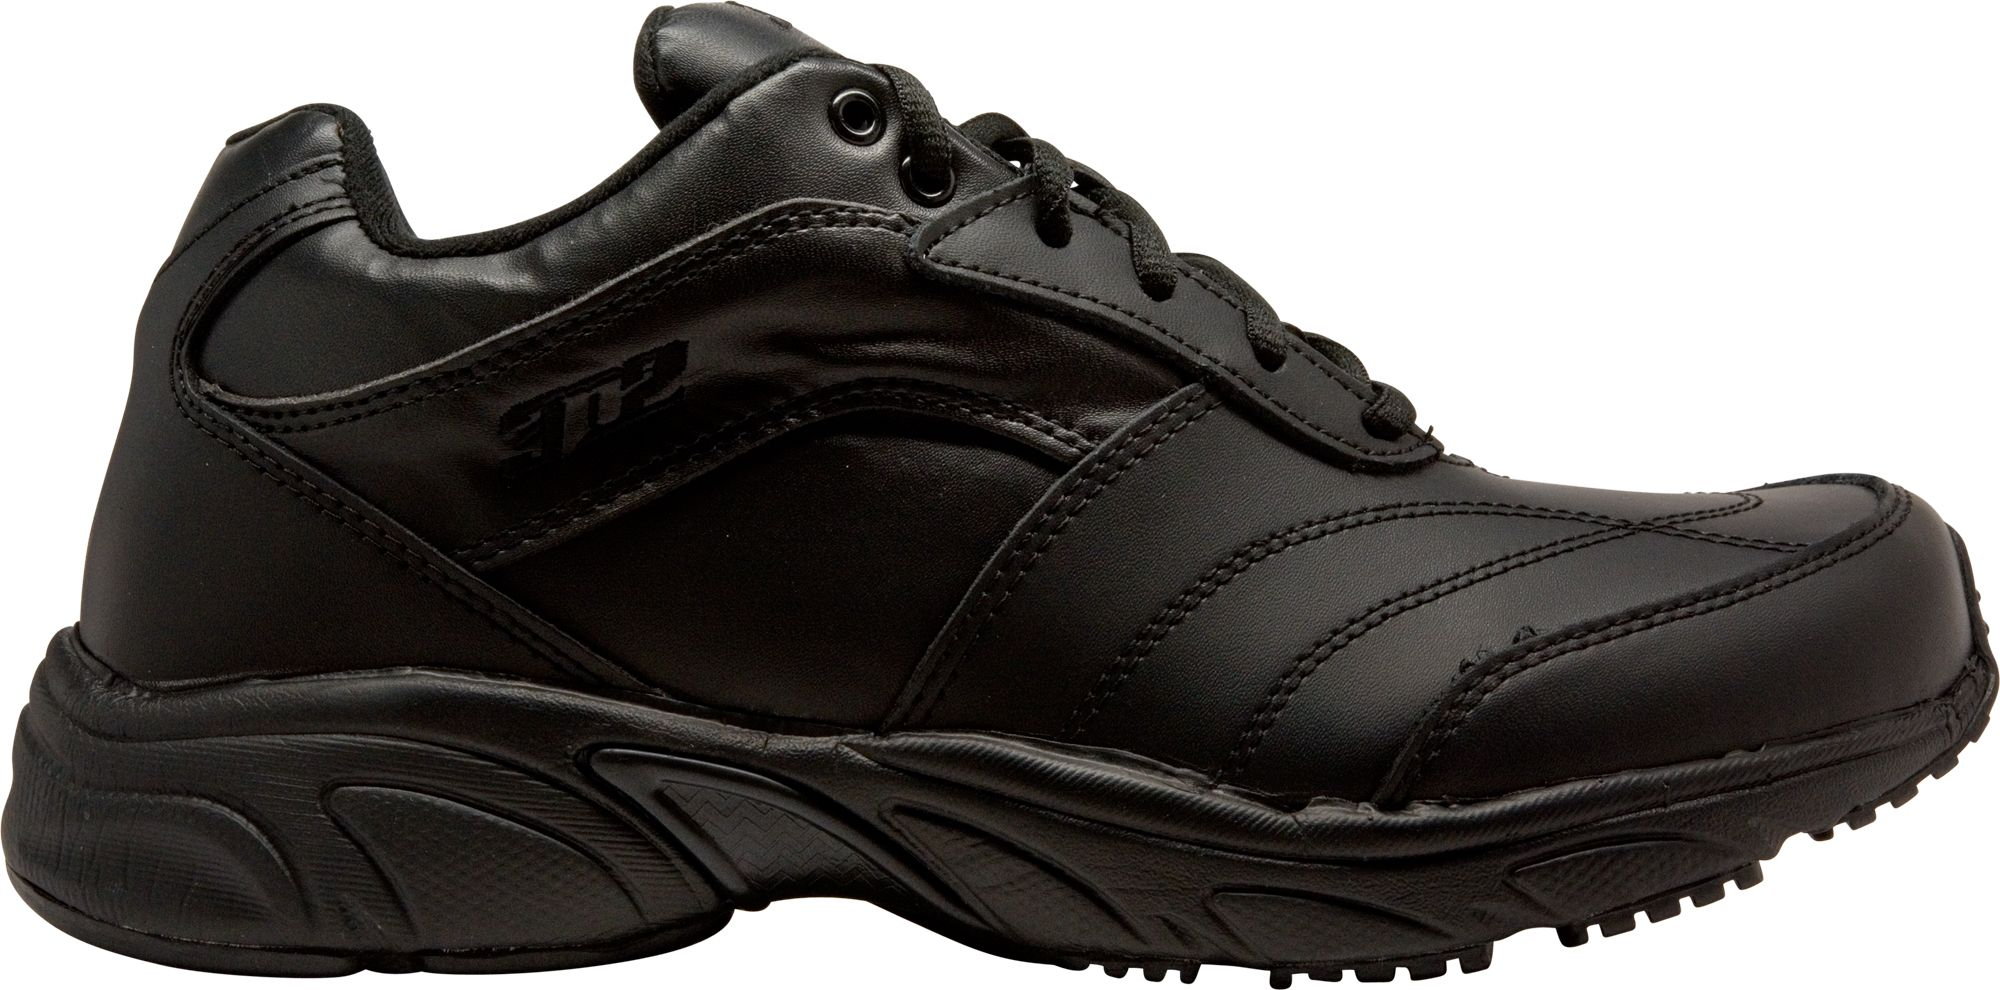 3n2 Mens Reaction Referee Shoes DICKS Sporting Goods